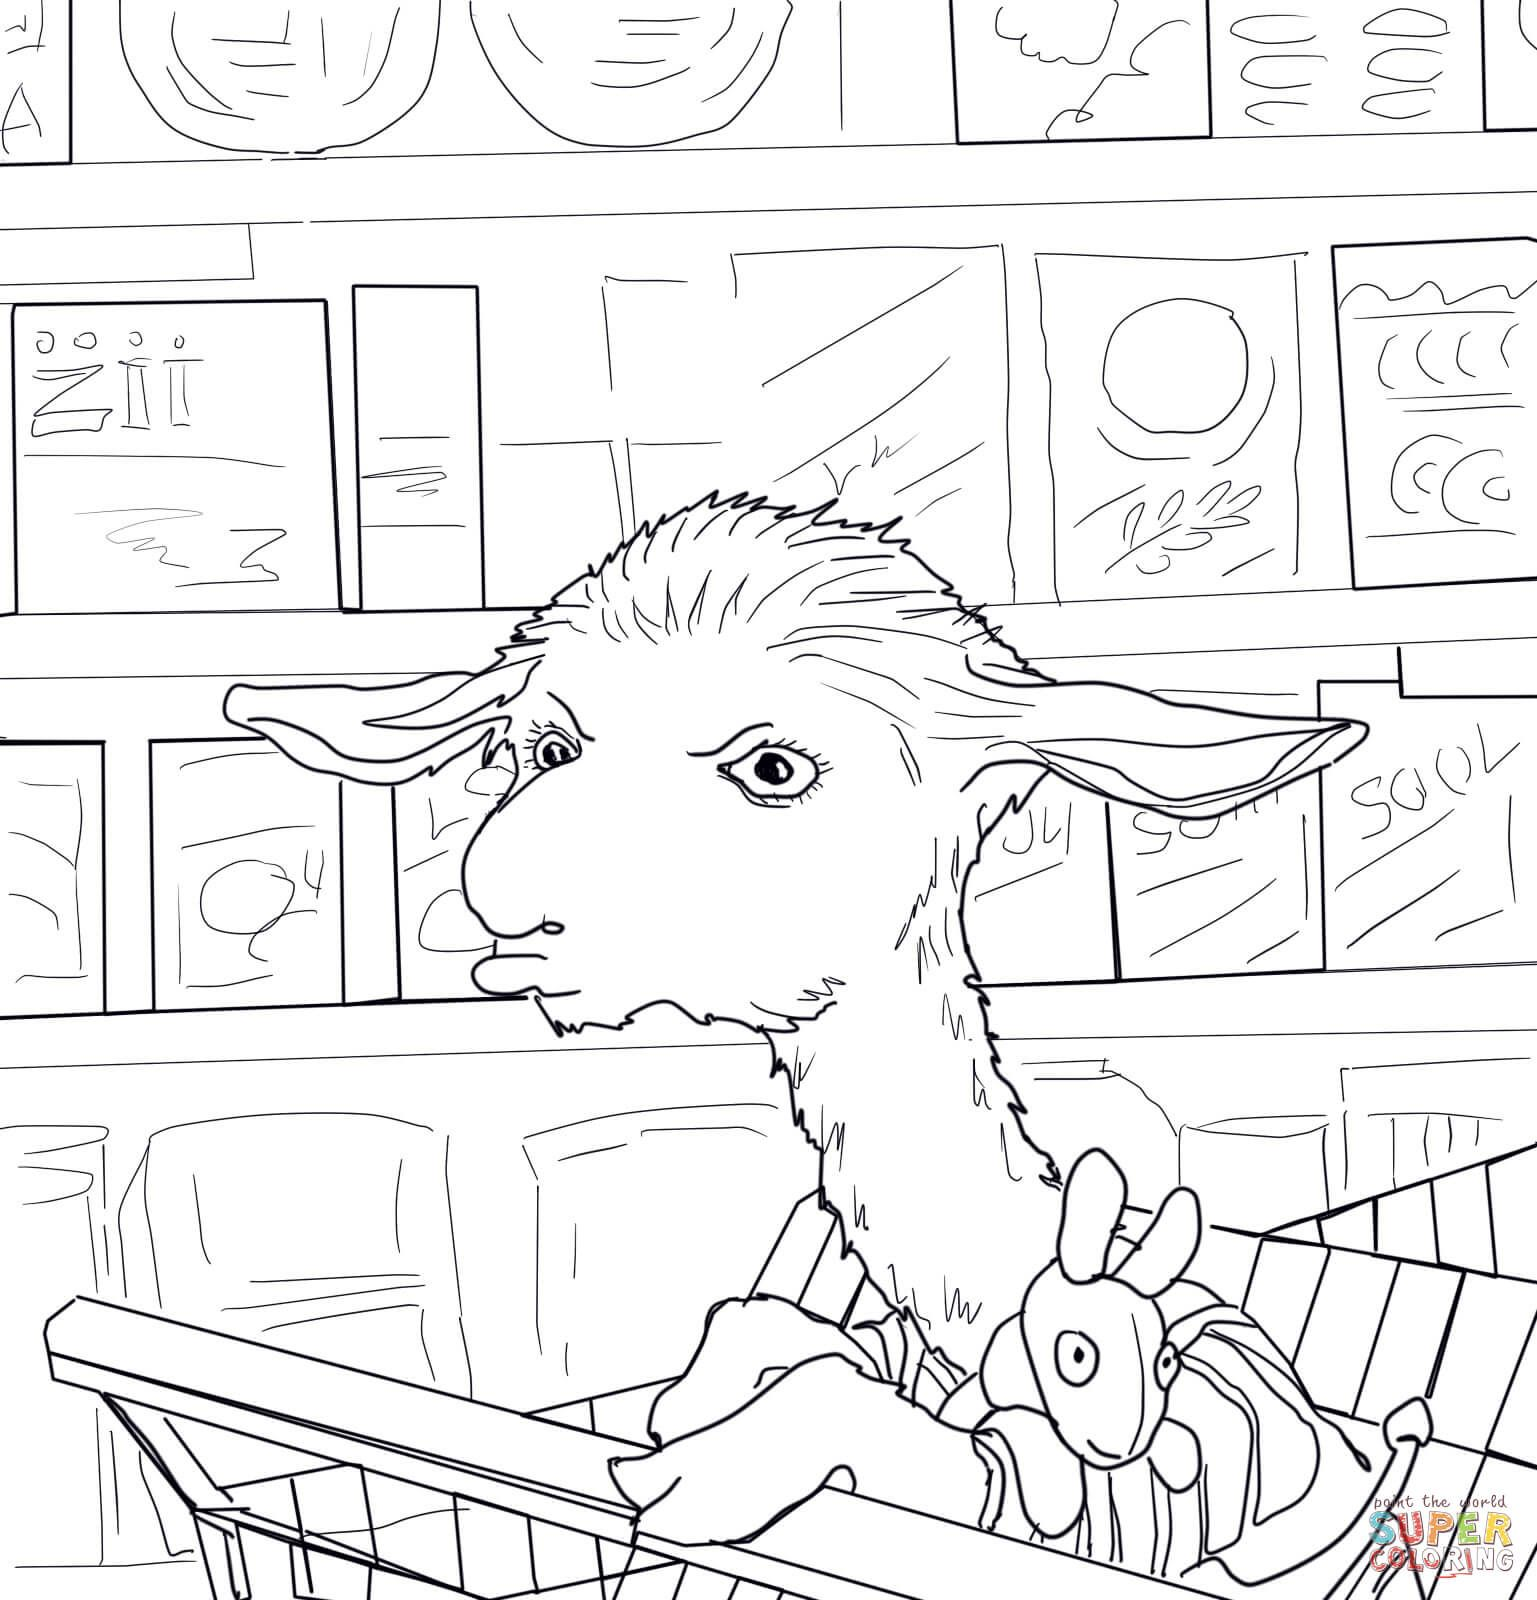 Llama Llama Mad at Mama coloring page from Llama Llama category